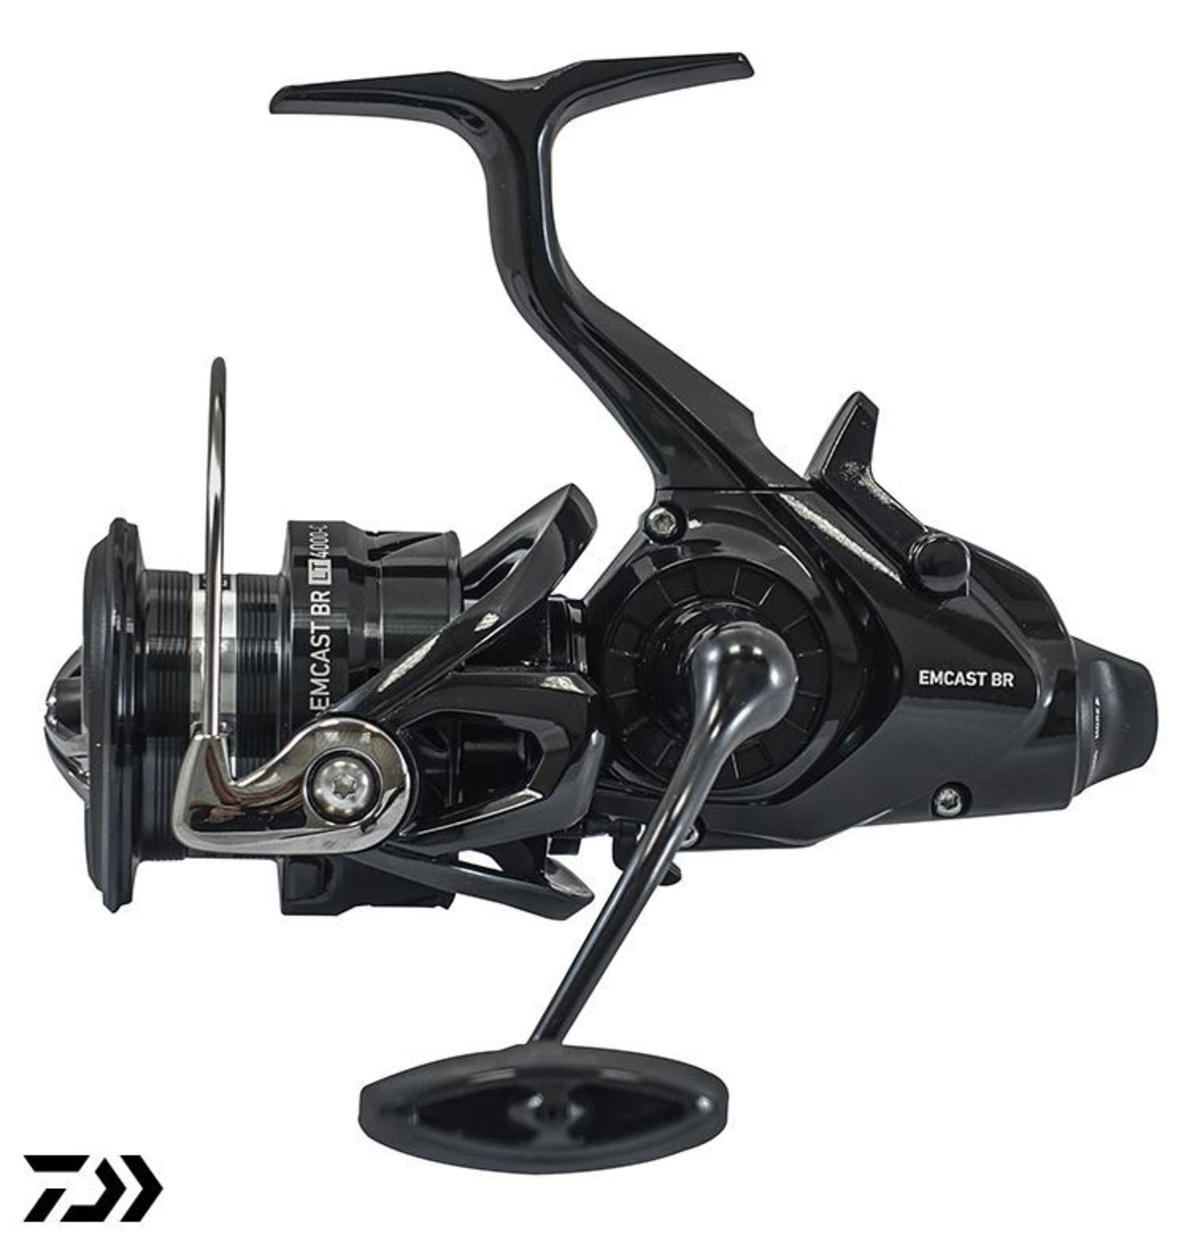 New Daiwa 19 Emcast BR LT Bite 'N' Run Freespool Fishing Reel - All Models